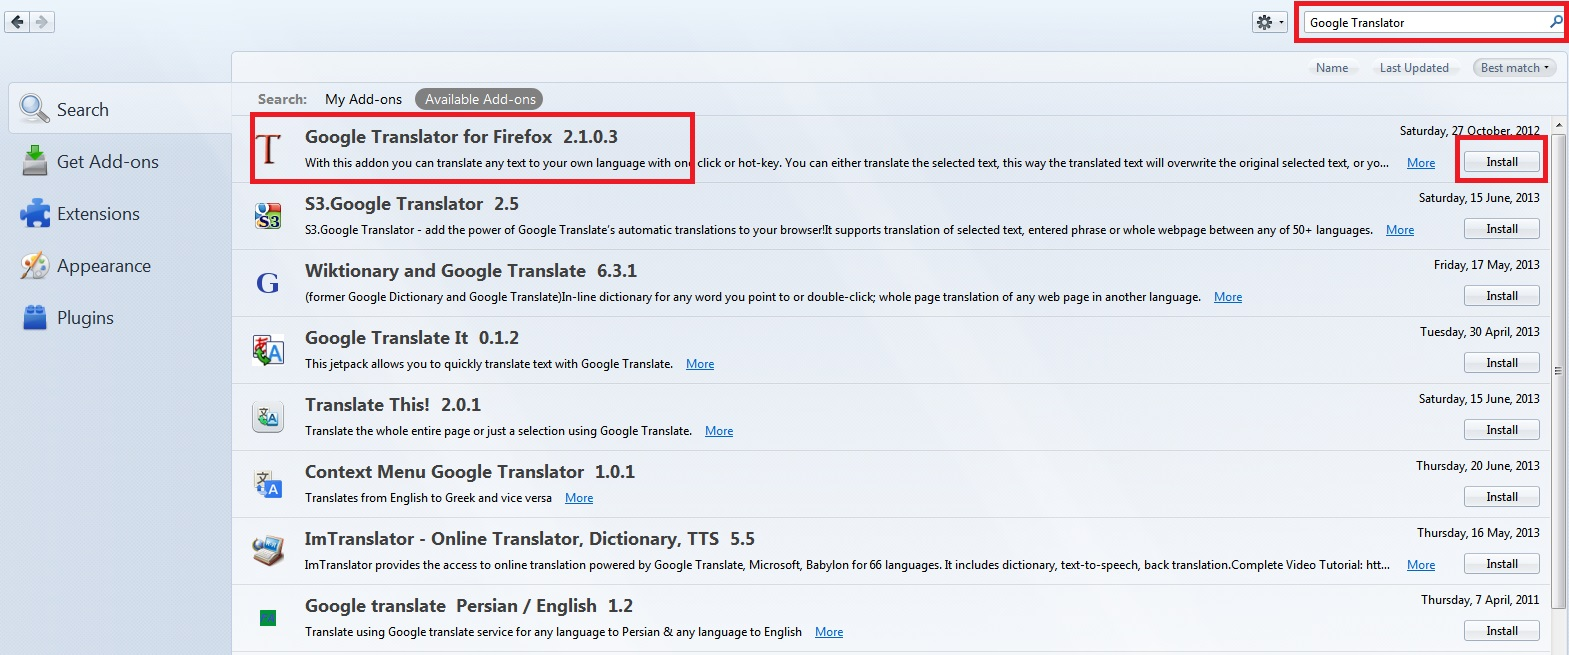 How To Install Add-ons on Mozilla Firefox Browser - Image 3